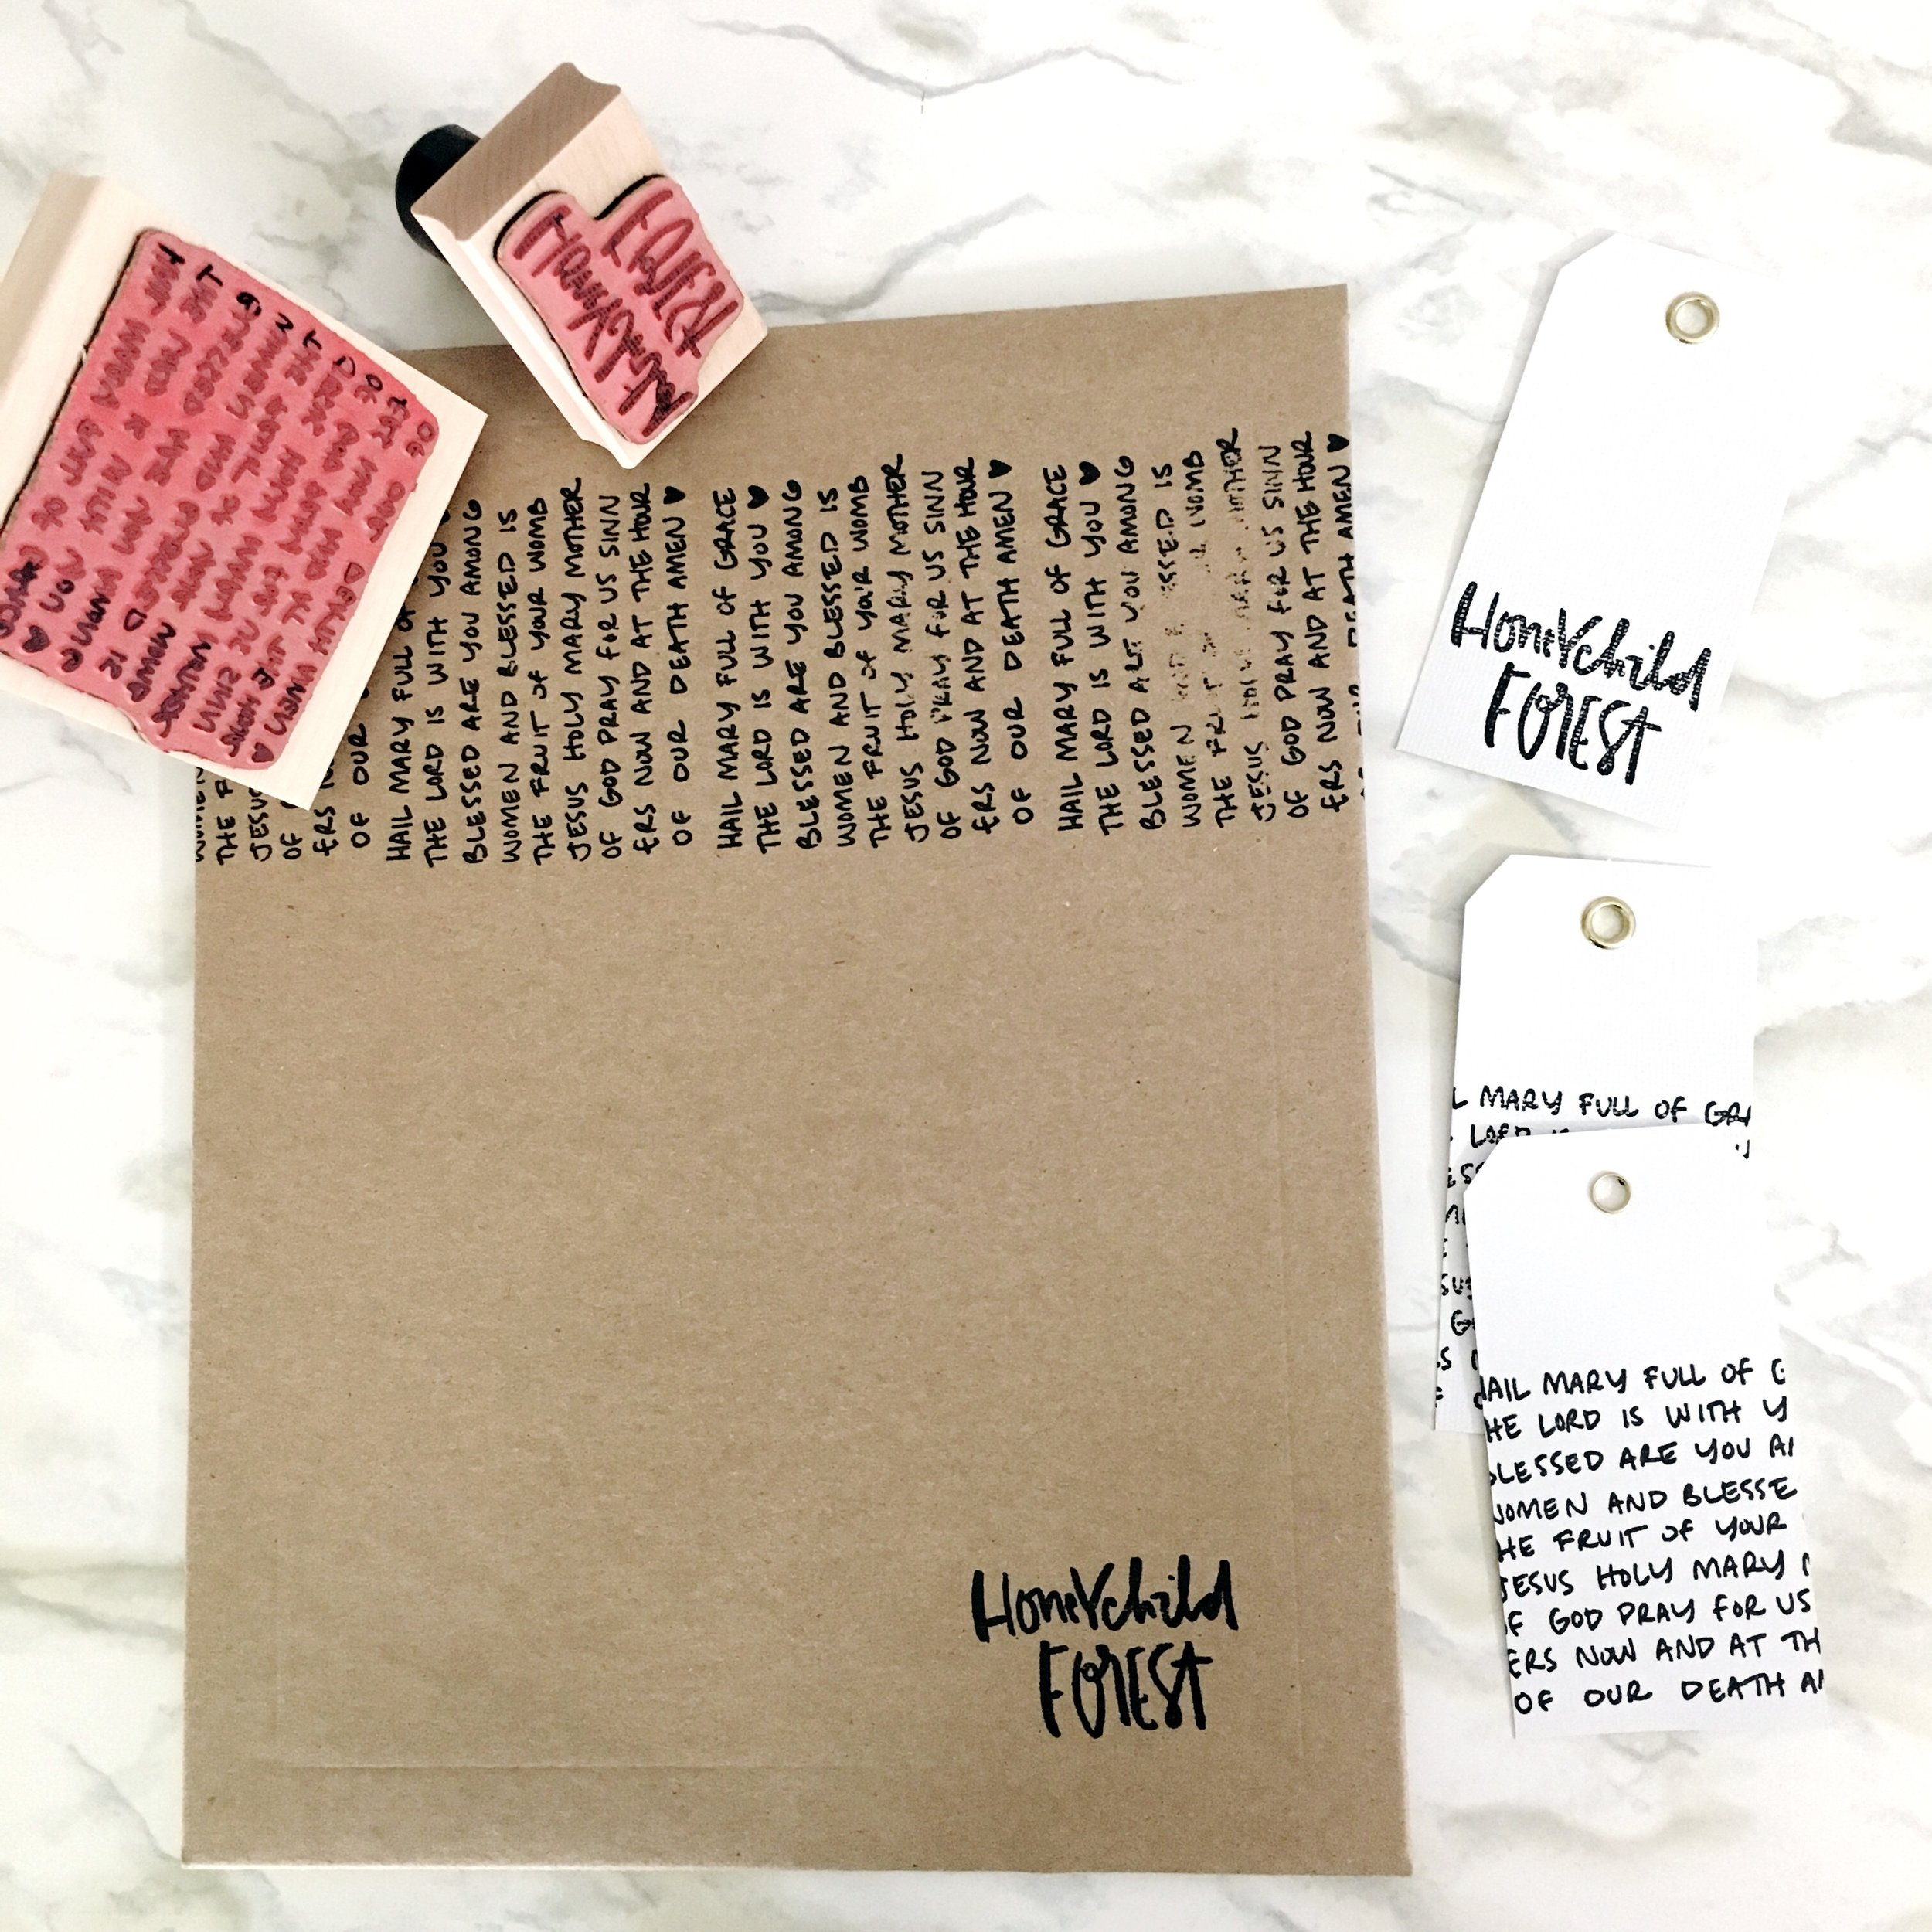 Creatiate Stamps Packaging Ideas - The Creatiate DIY Blog _0465.jpg